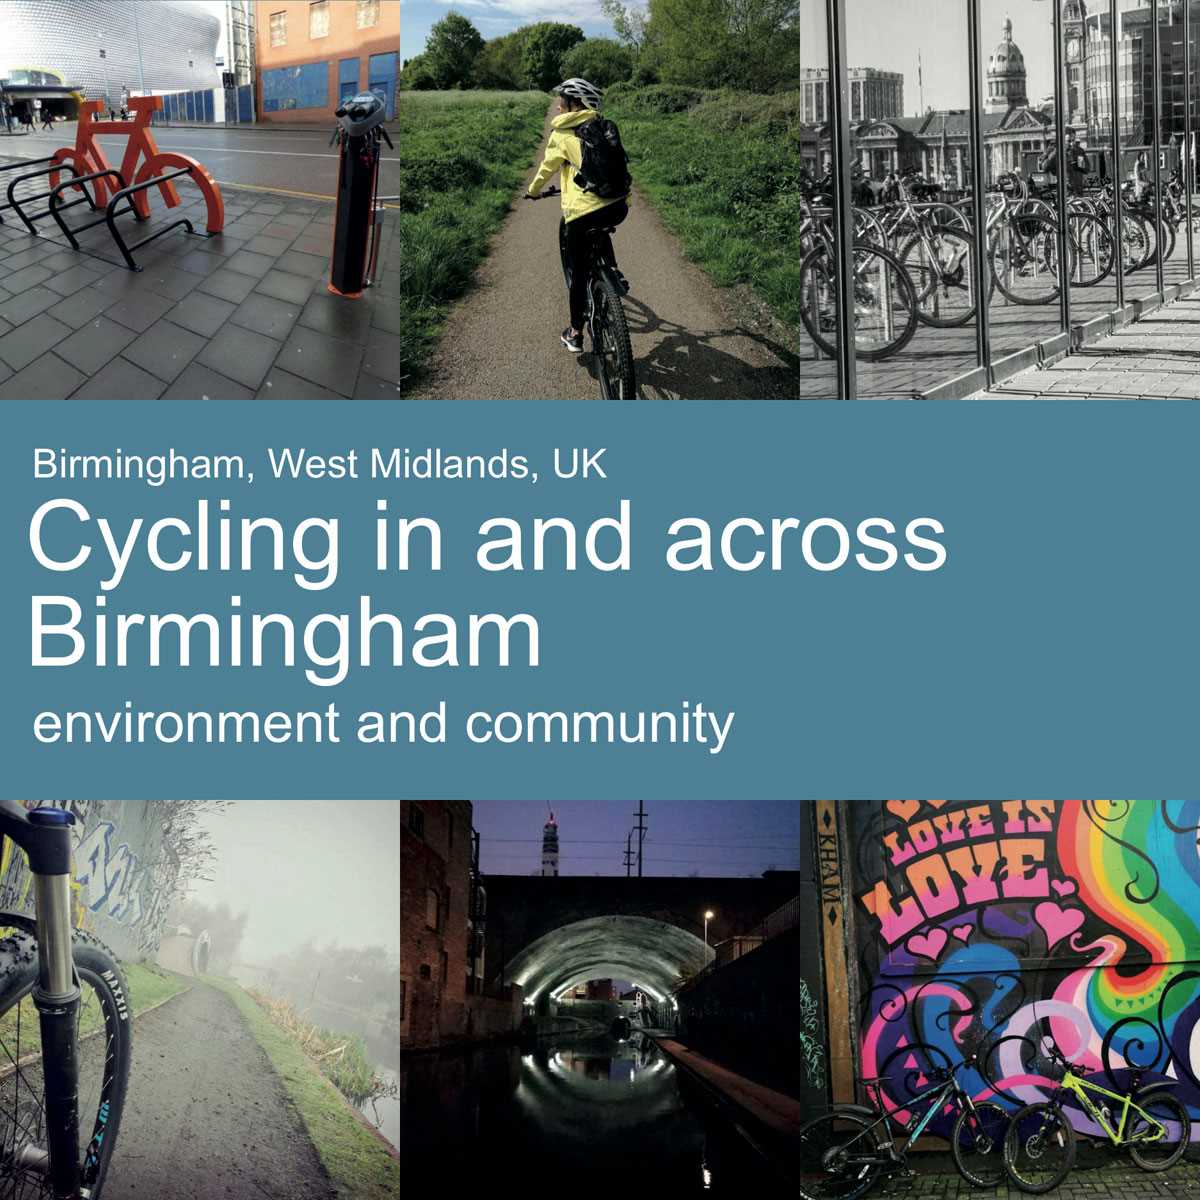 Cycling in and across Birmingham